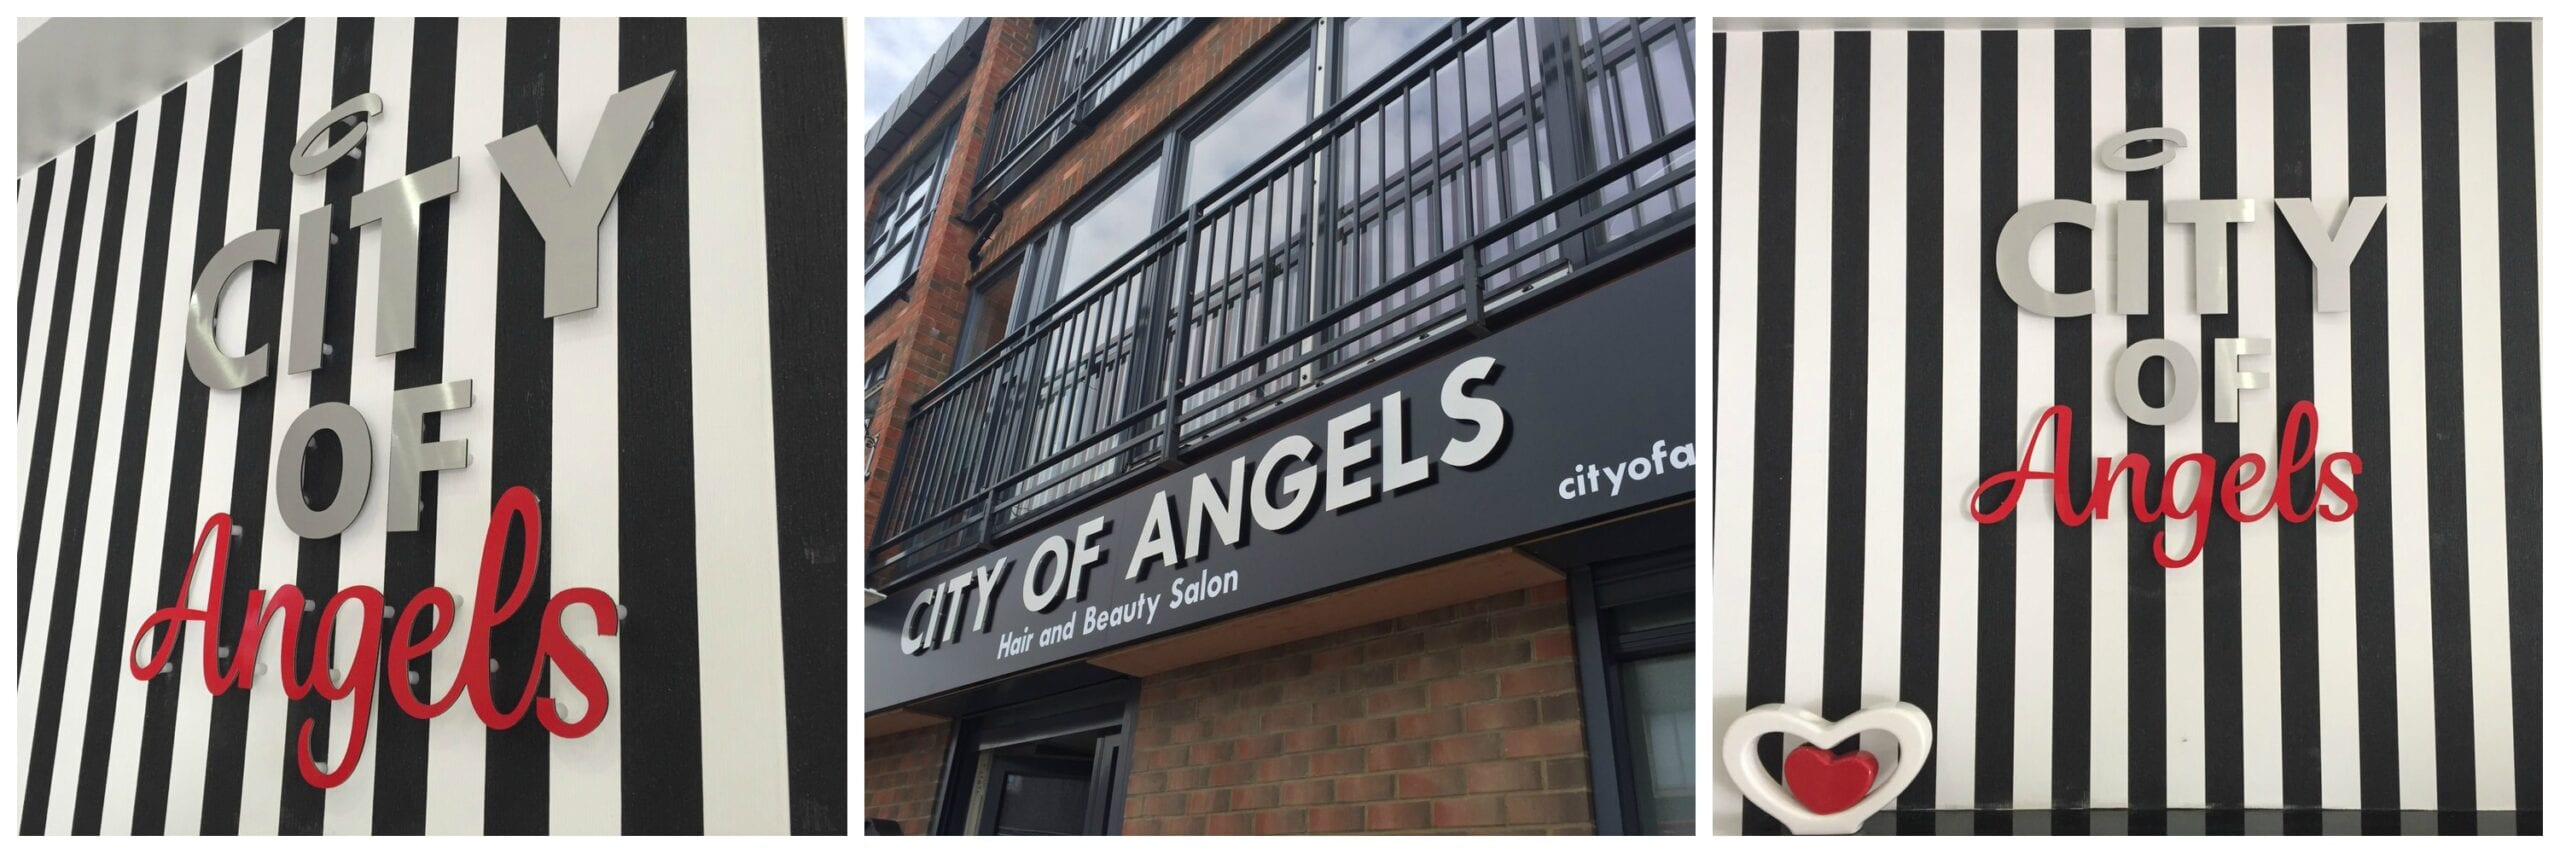 City of Angels West Ham flat cut letters hanging projecting sign